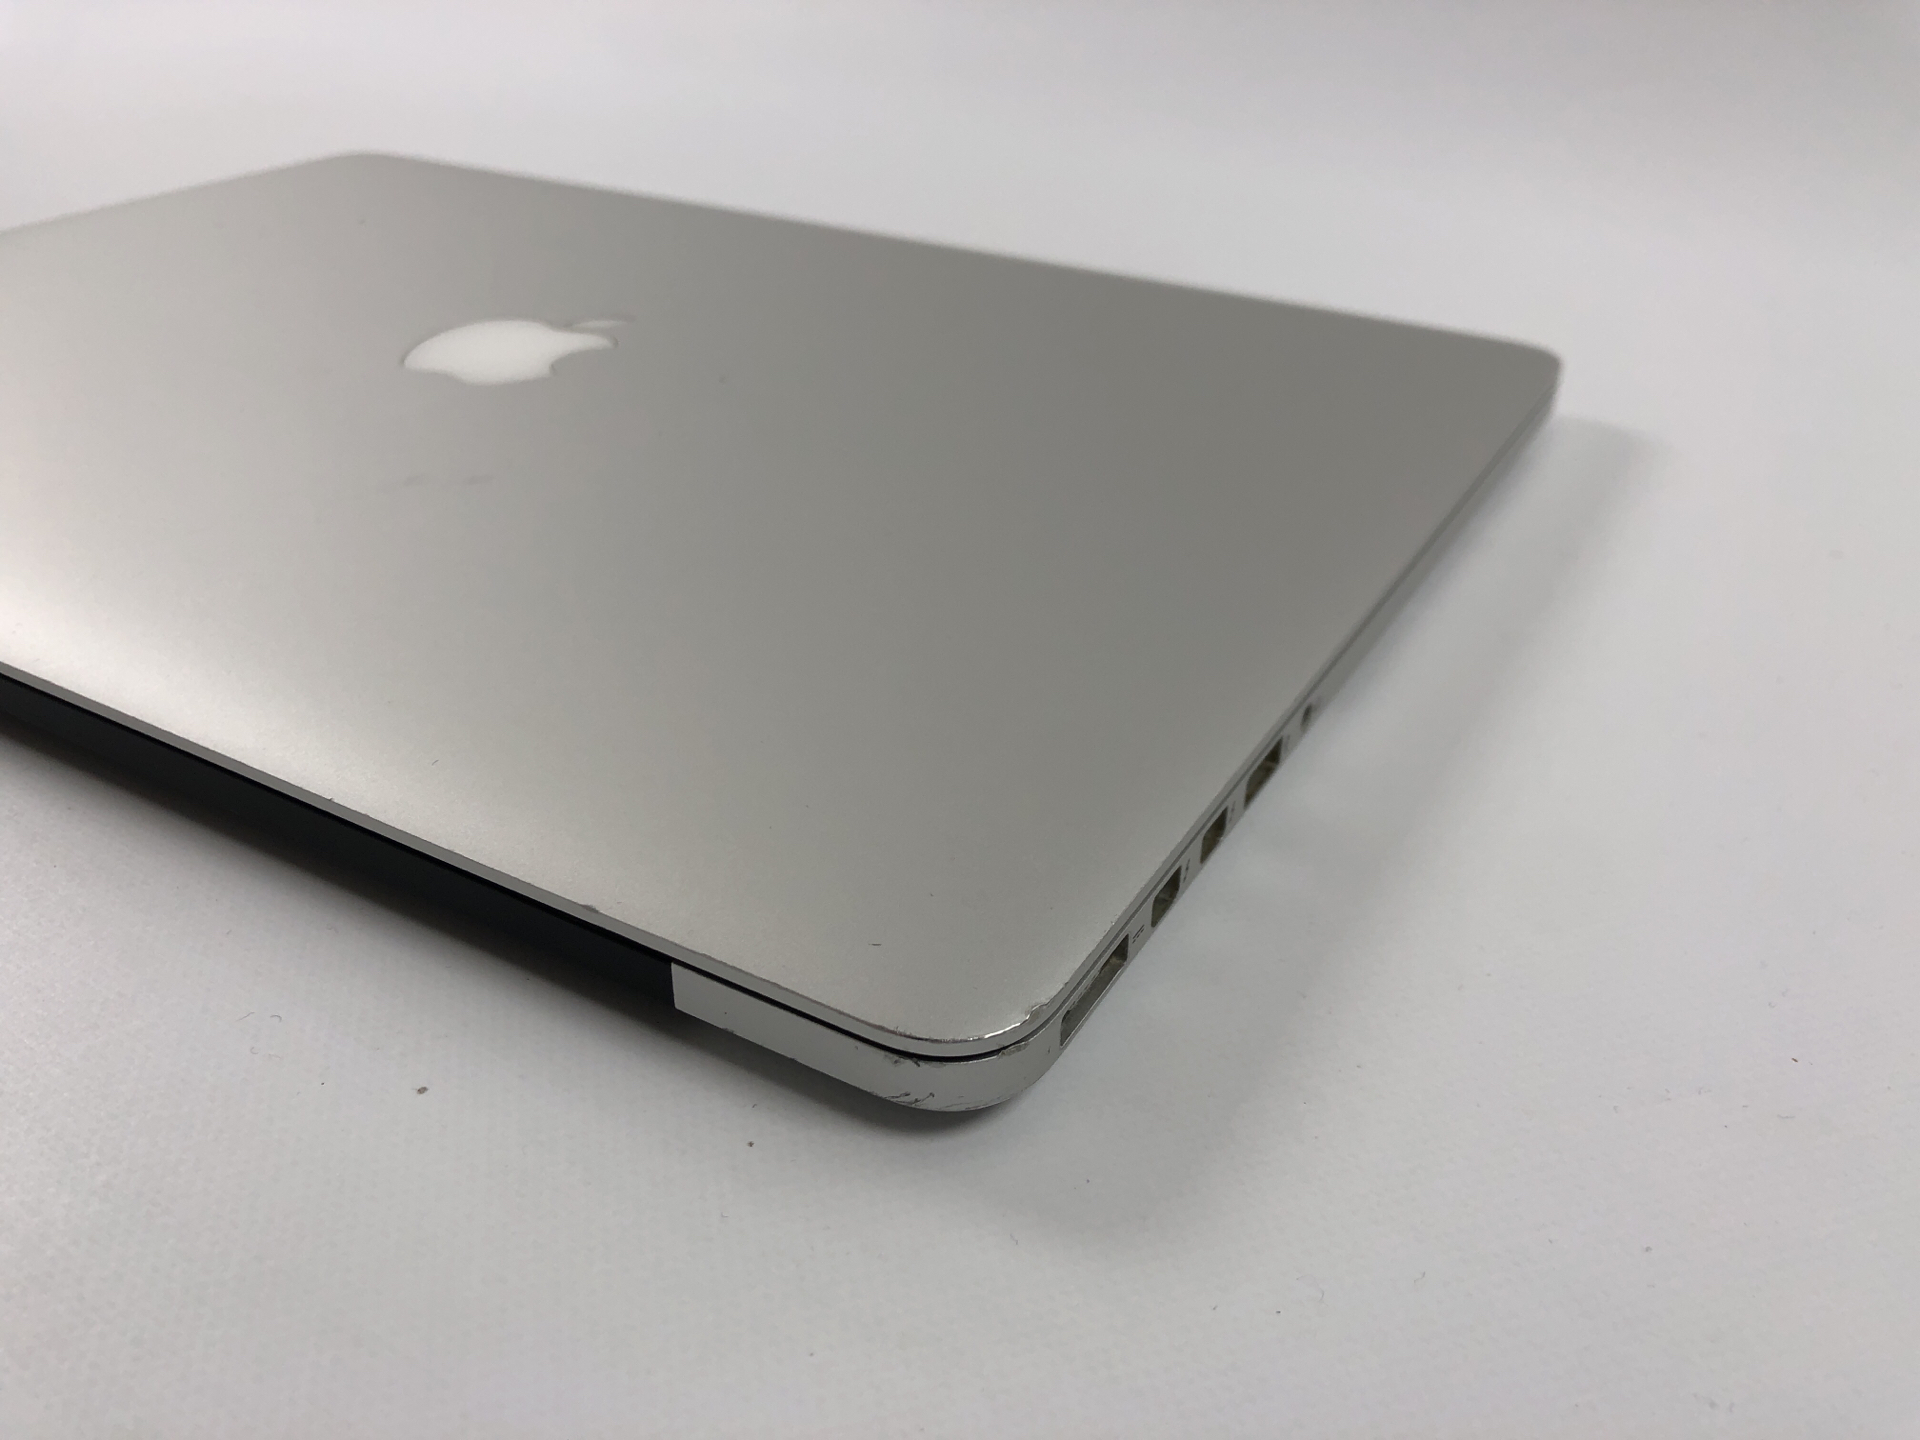 "MacBook Pro Retina 15"" Mid 2015 (Intel Quad-Core i7 2.2 GHz 16 GB RAM 256 GB SSD), Intel Quad-Core i7 2.2 GHz, 16 GB RAM, 256 GB SSD, Bild 2"